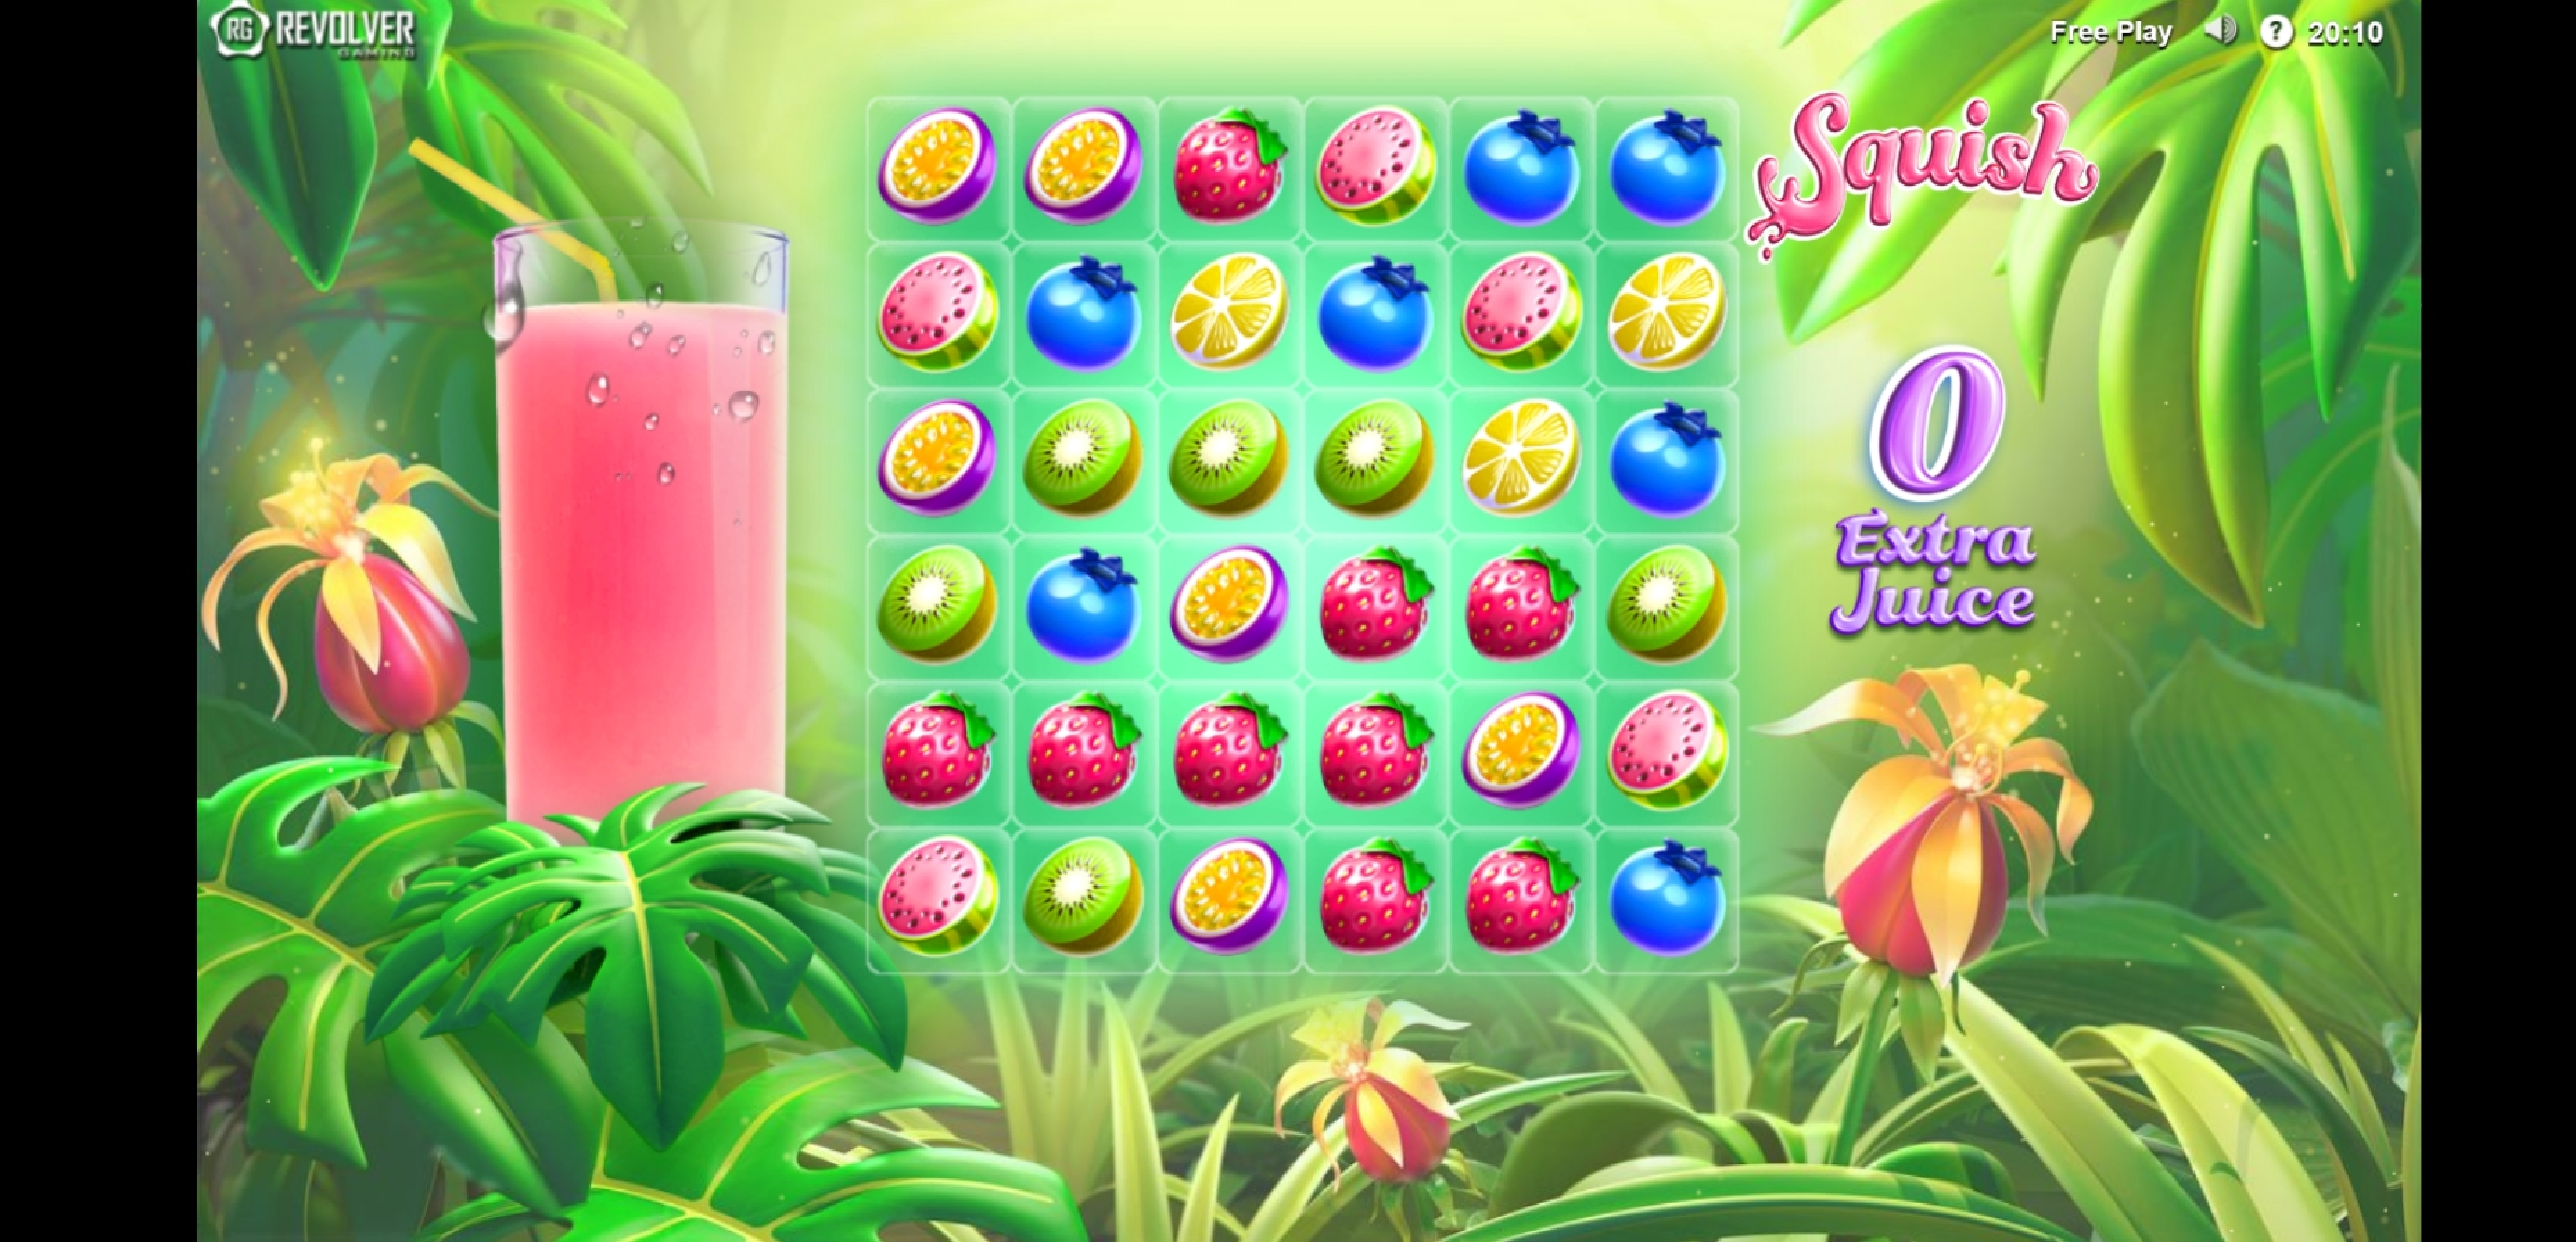 Reels in Squish Slot Game by Revolver Gaming